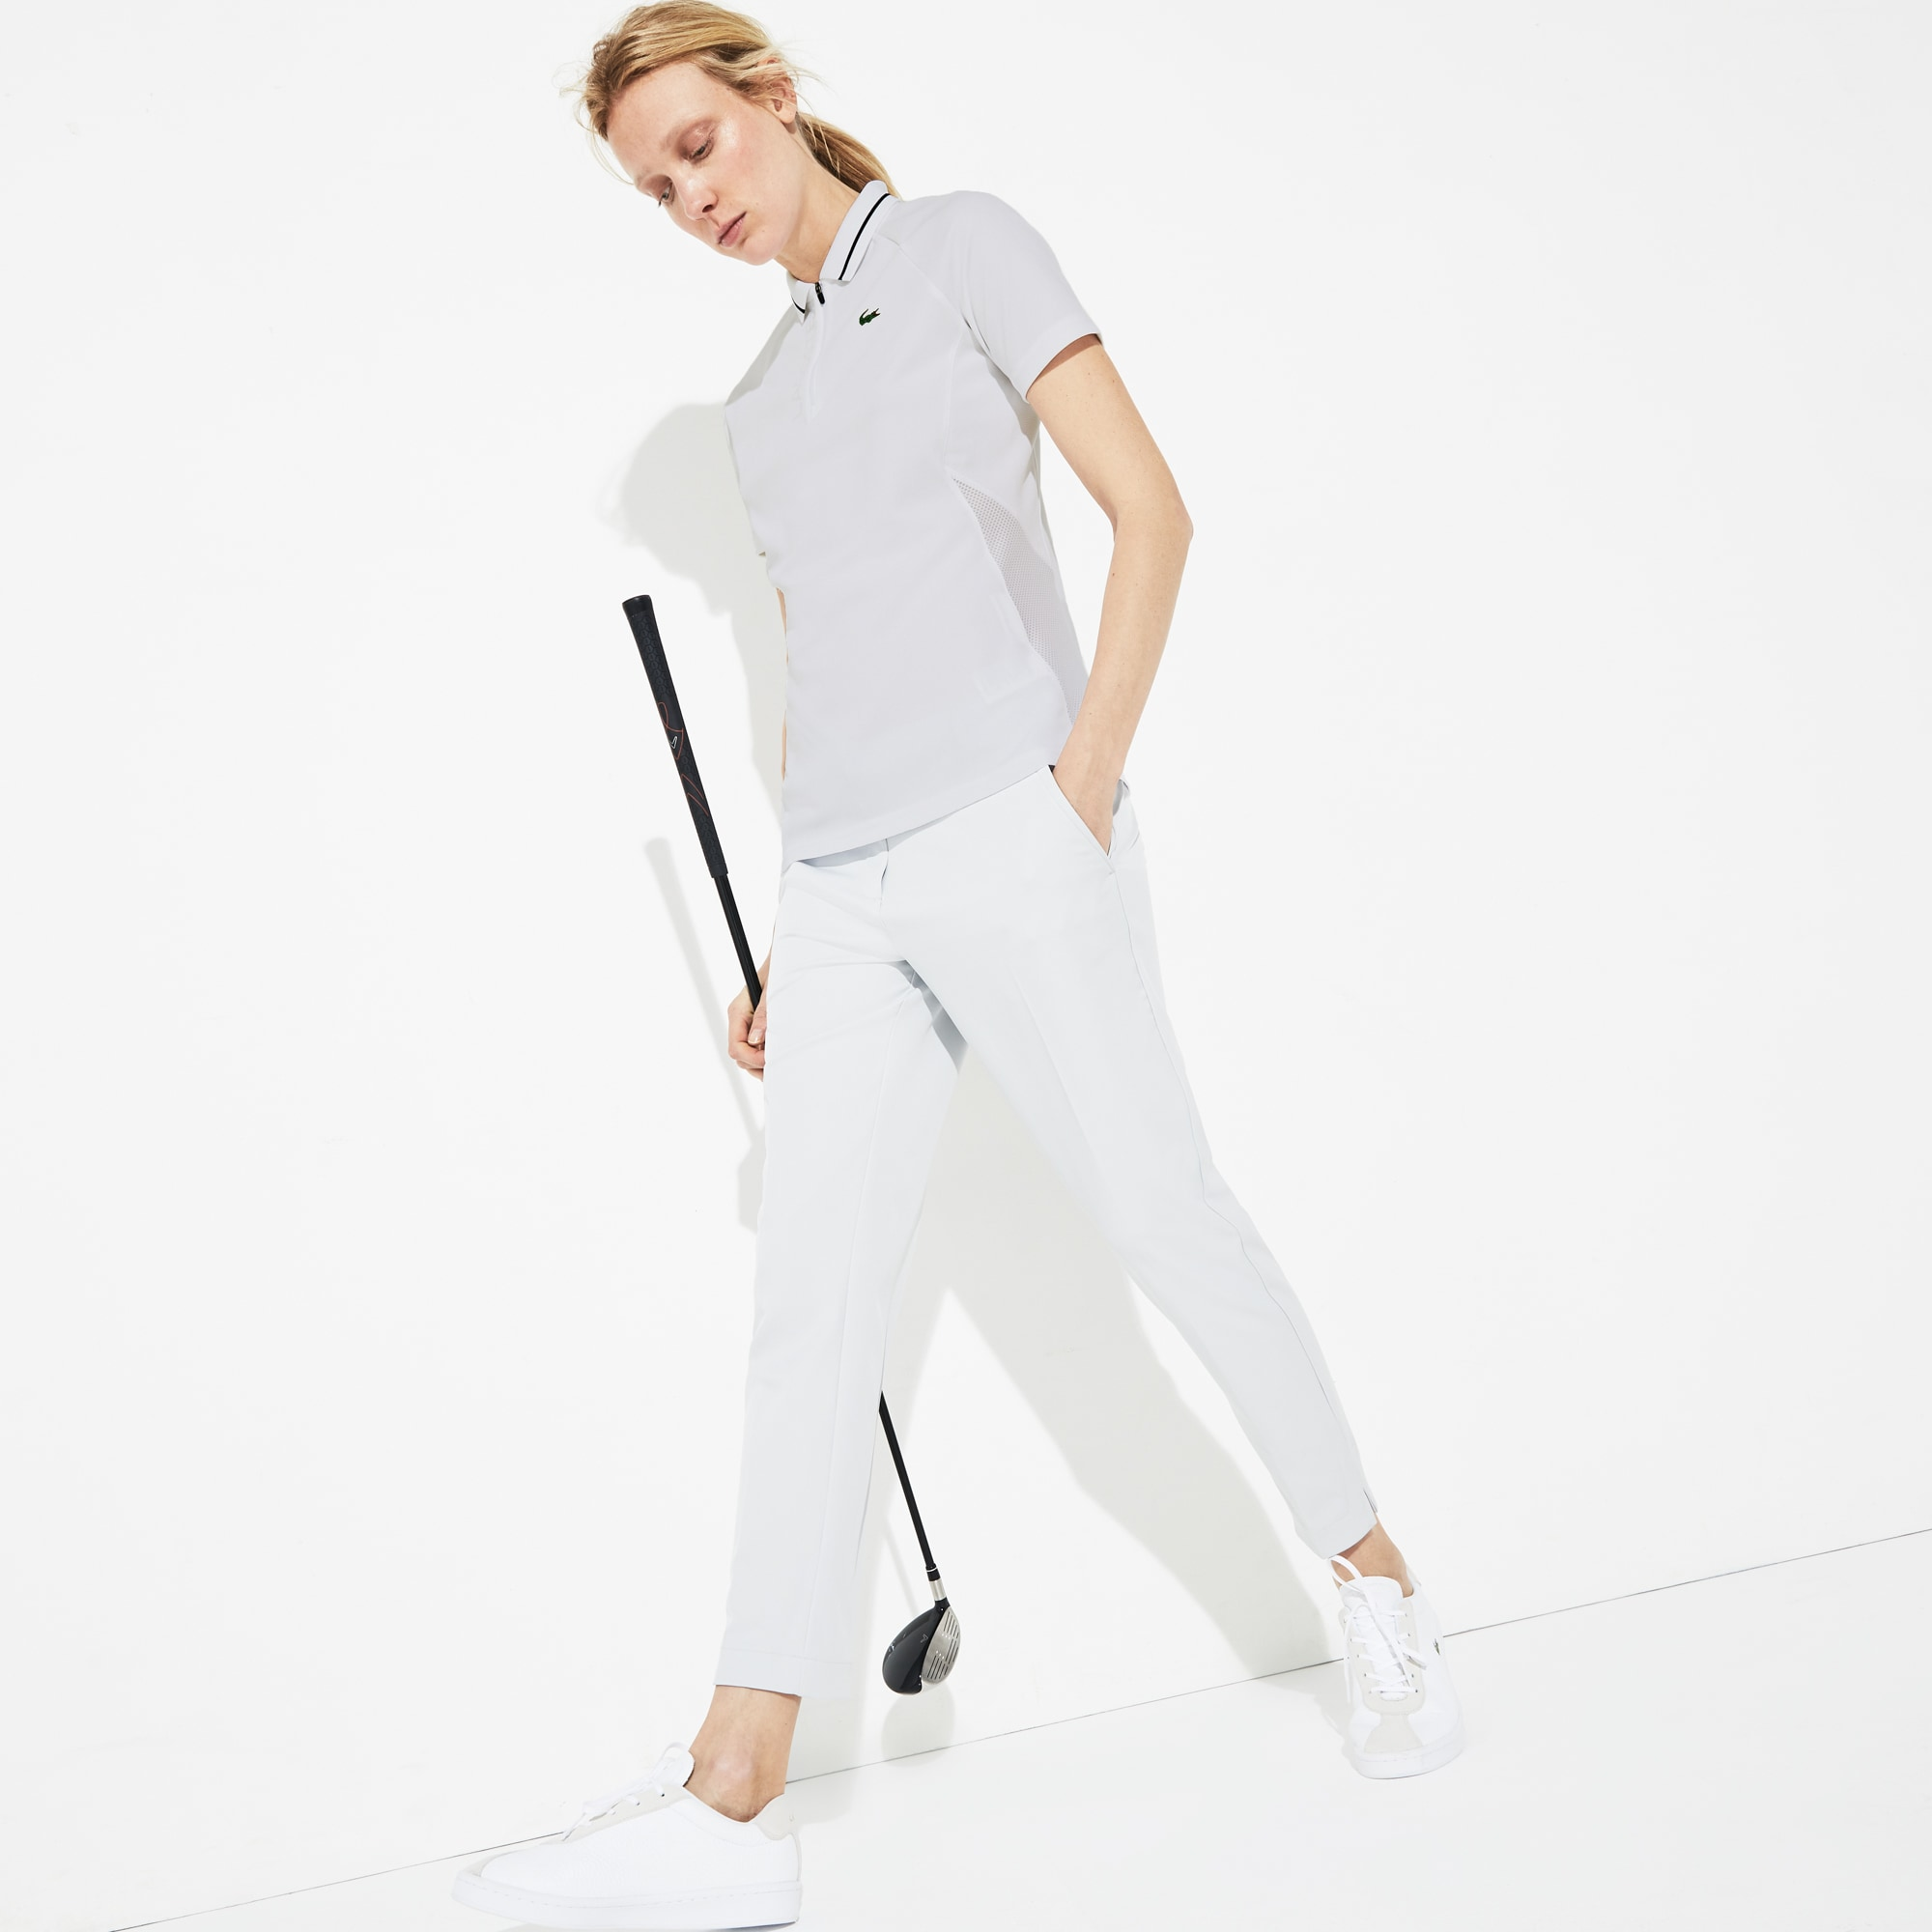 Women's Lacoste SPORT Zip Neck Mesh Panels Technical Golf Polo Shirt